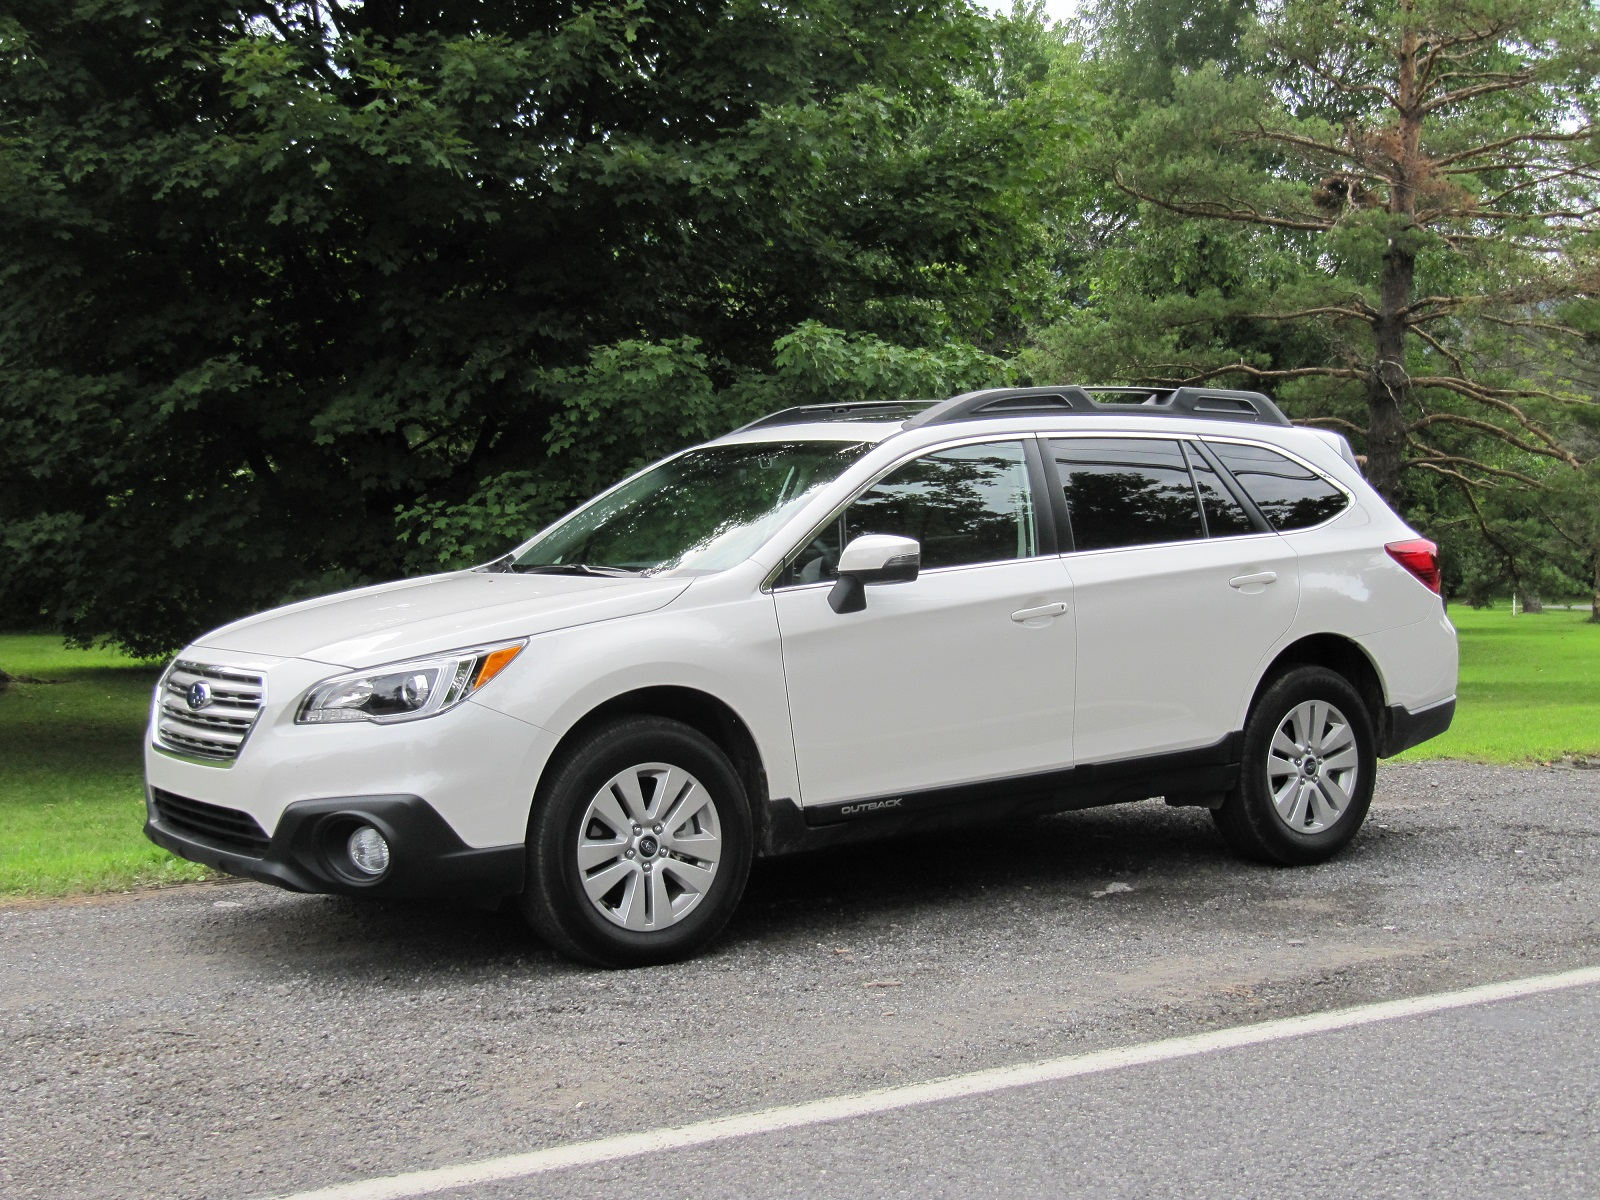 2015 subaru outback gas mileage review of crossover wagon. Black Bedroom Furniture Sets. Home Design Ideas